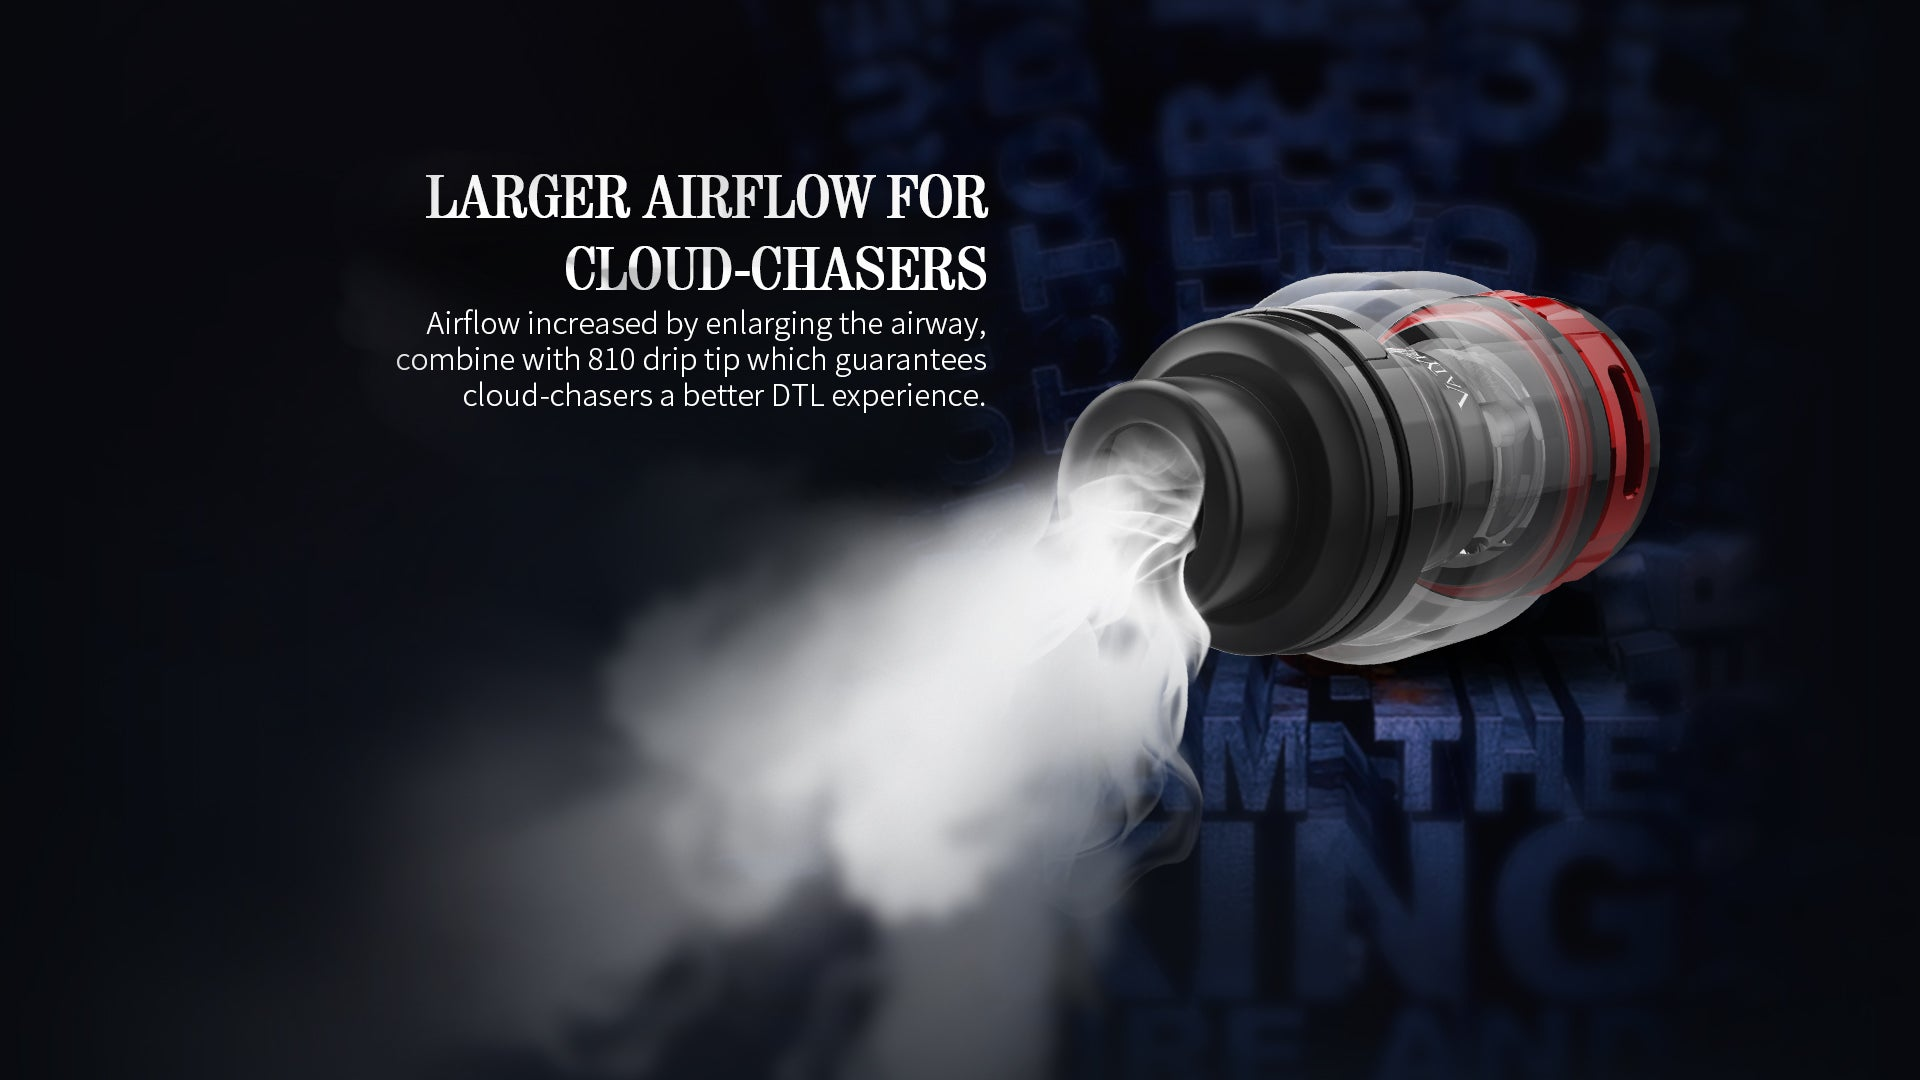 Featuring an increased airflow capacity